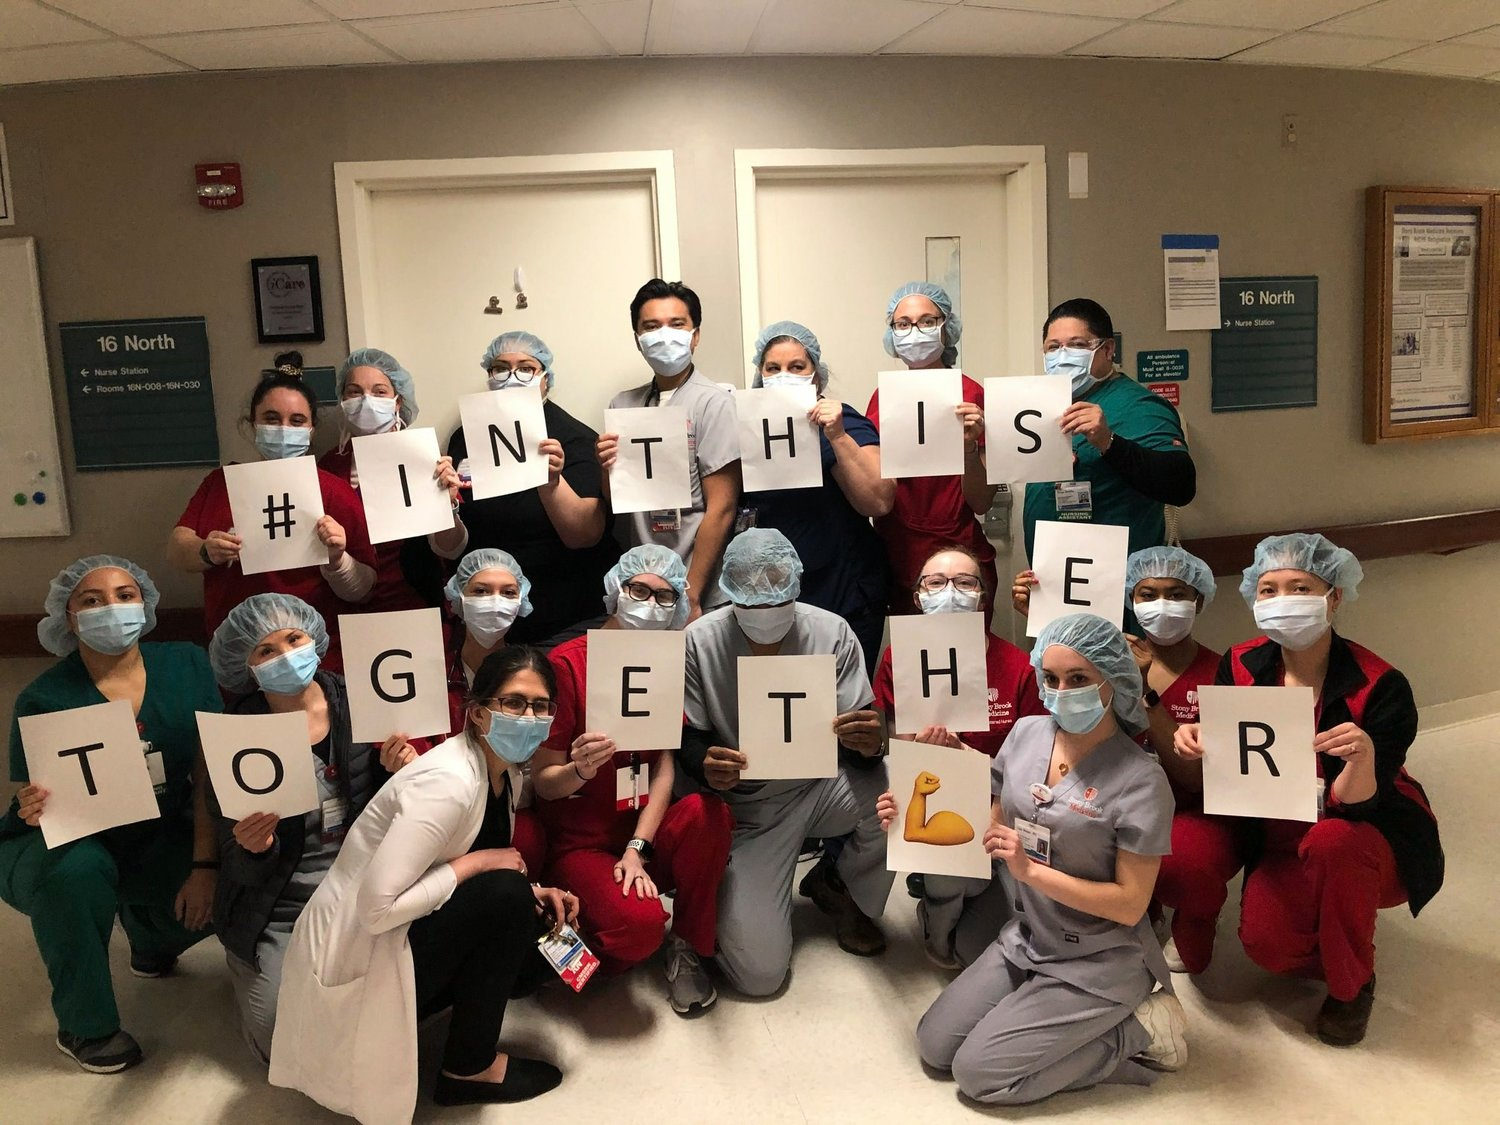 Nurses at Stony Brook University Hospital participate in the #InThisTogether campaign, showing support for fellow nurses and health care workers.